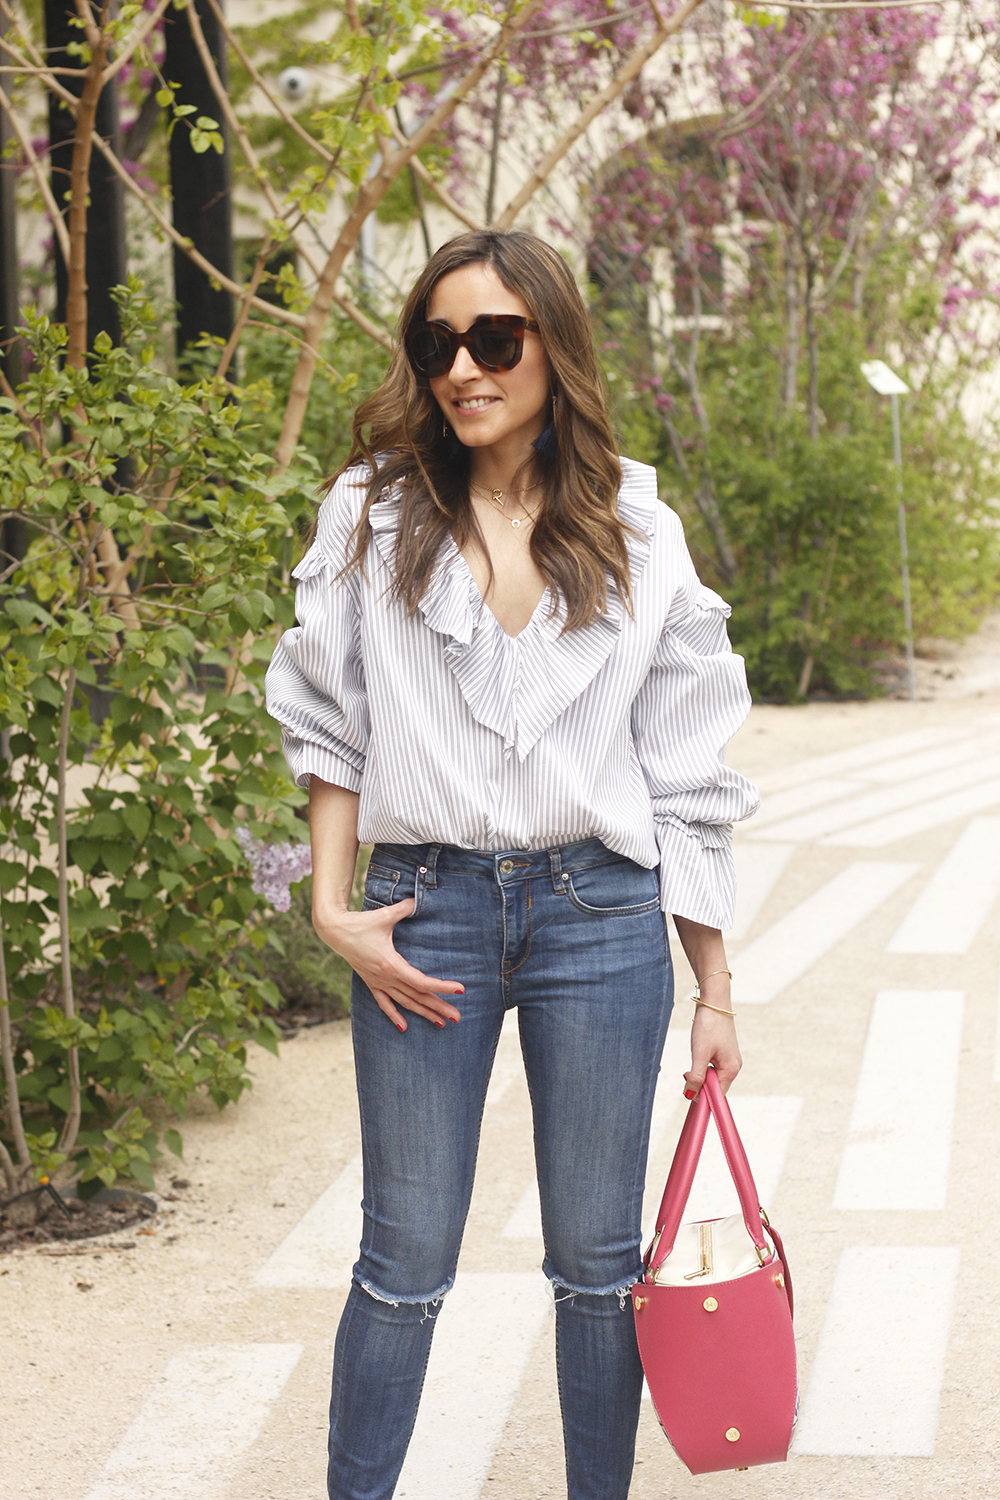 Ruffled striped shirt jeans céline sunnies sandals pamapamar bag accessories spring outfit style fashion06